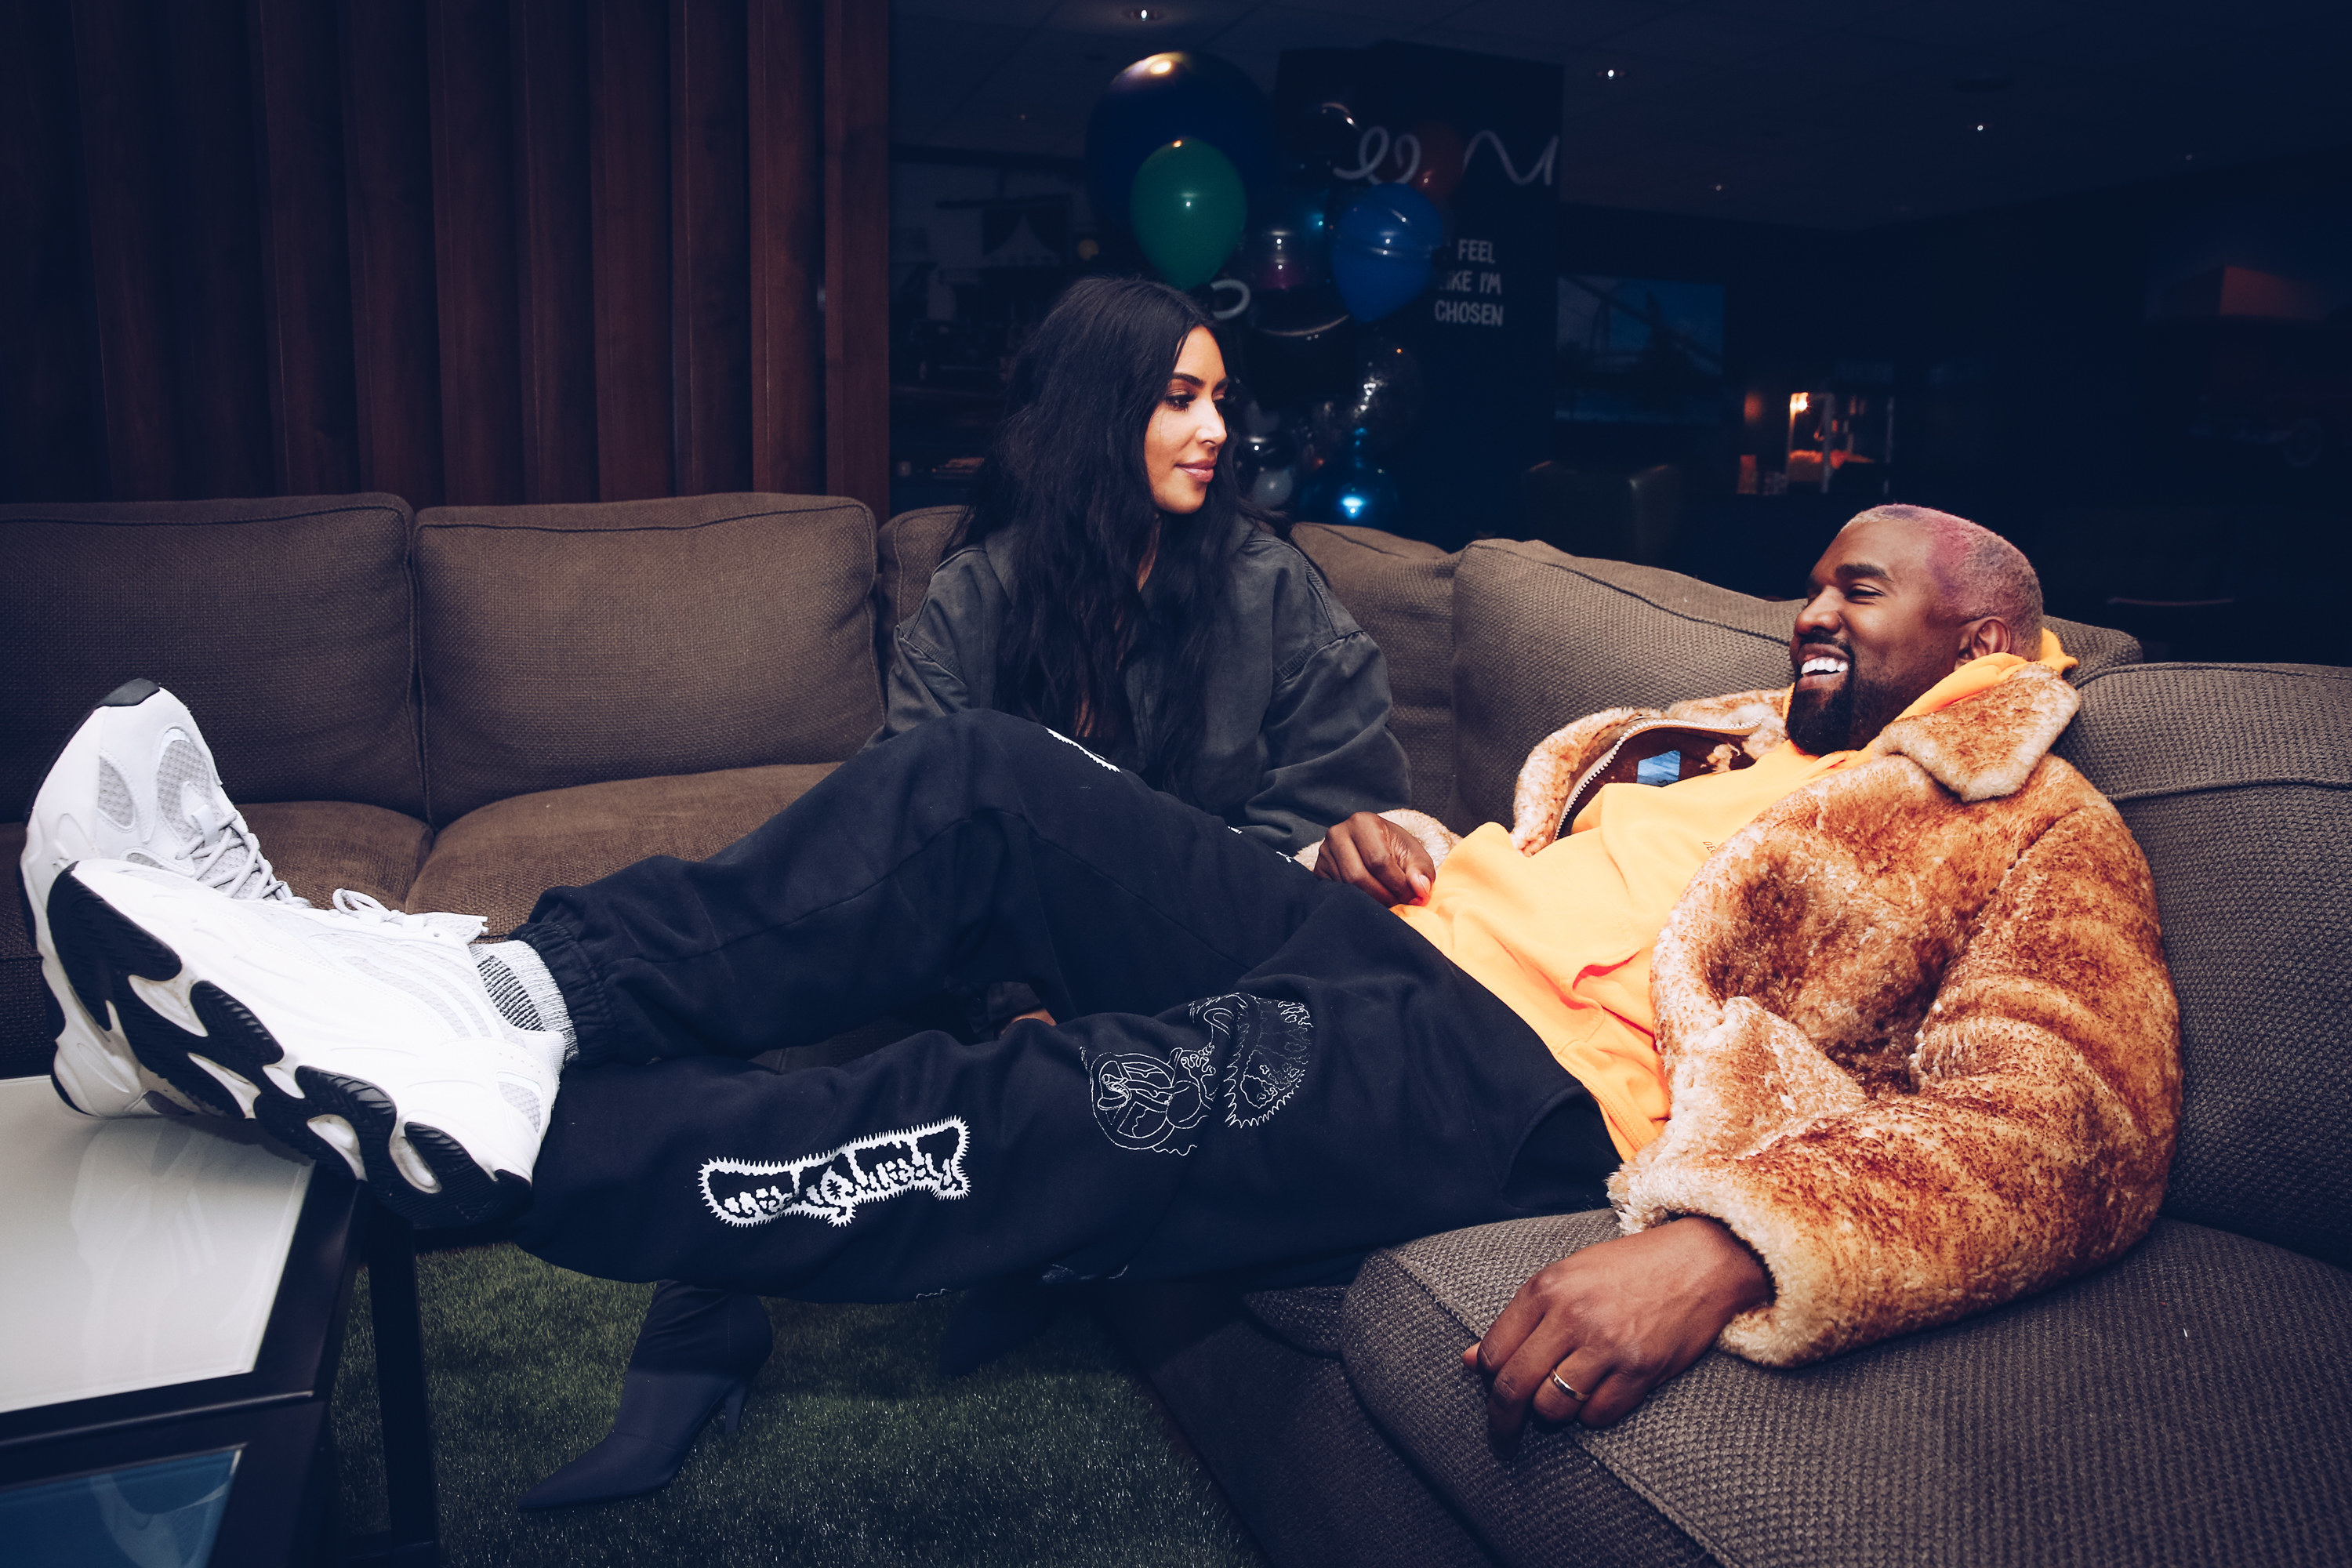 Kanye puts his feet up on a table while sitting next to Kim on a couch